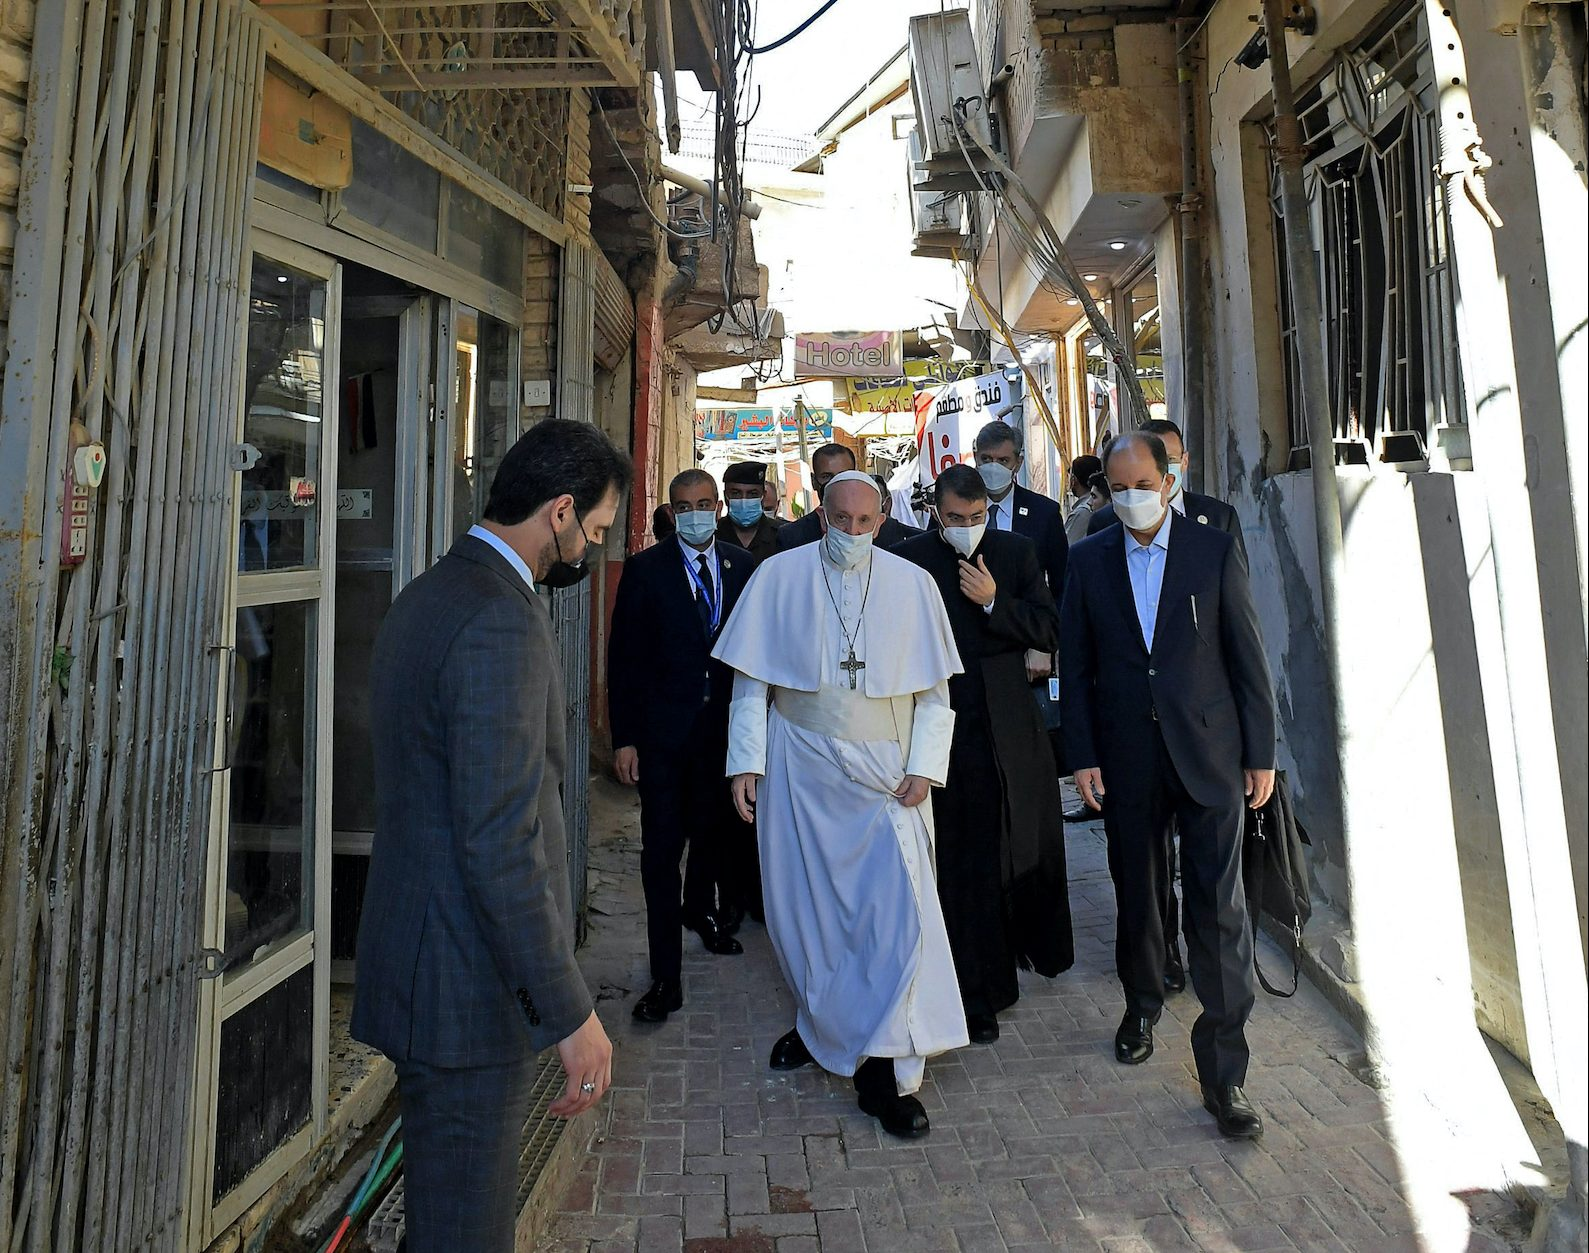 A handout picture provided by Sistani's Media Office shows Pope Francis arriving in the Iraqi shrine city of Najaf, on March 6, 2021. Photo: Ayatollah Sistani's Media Office/AFP/Stringer